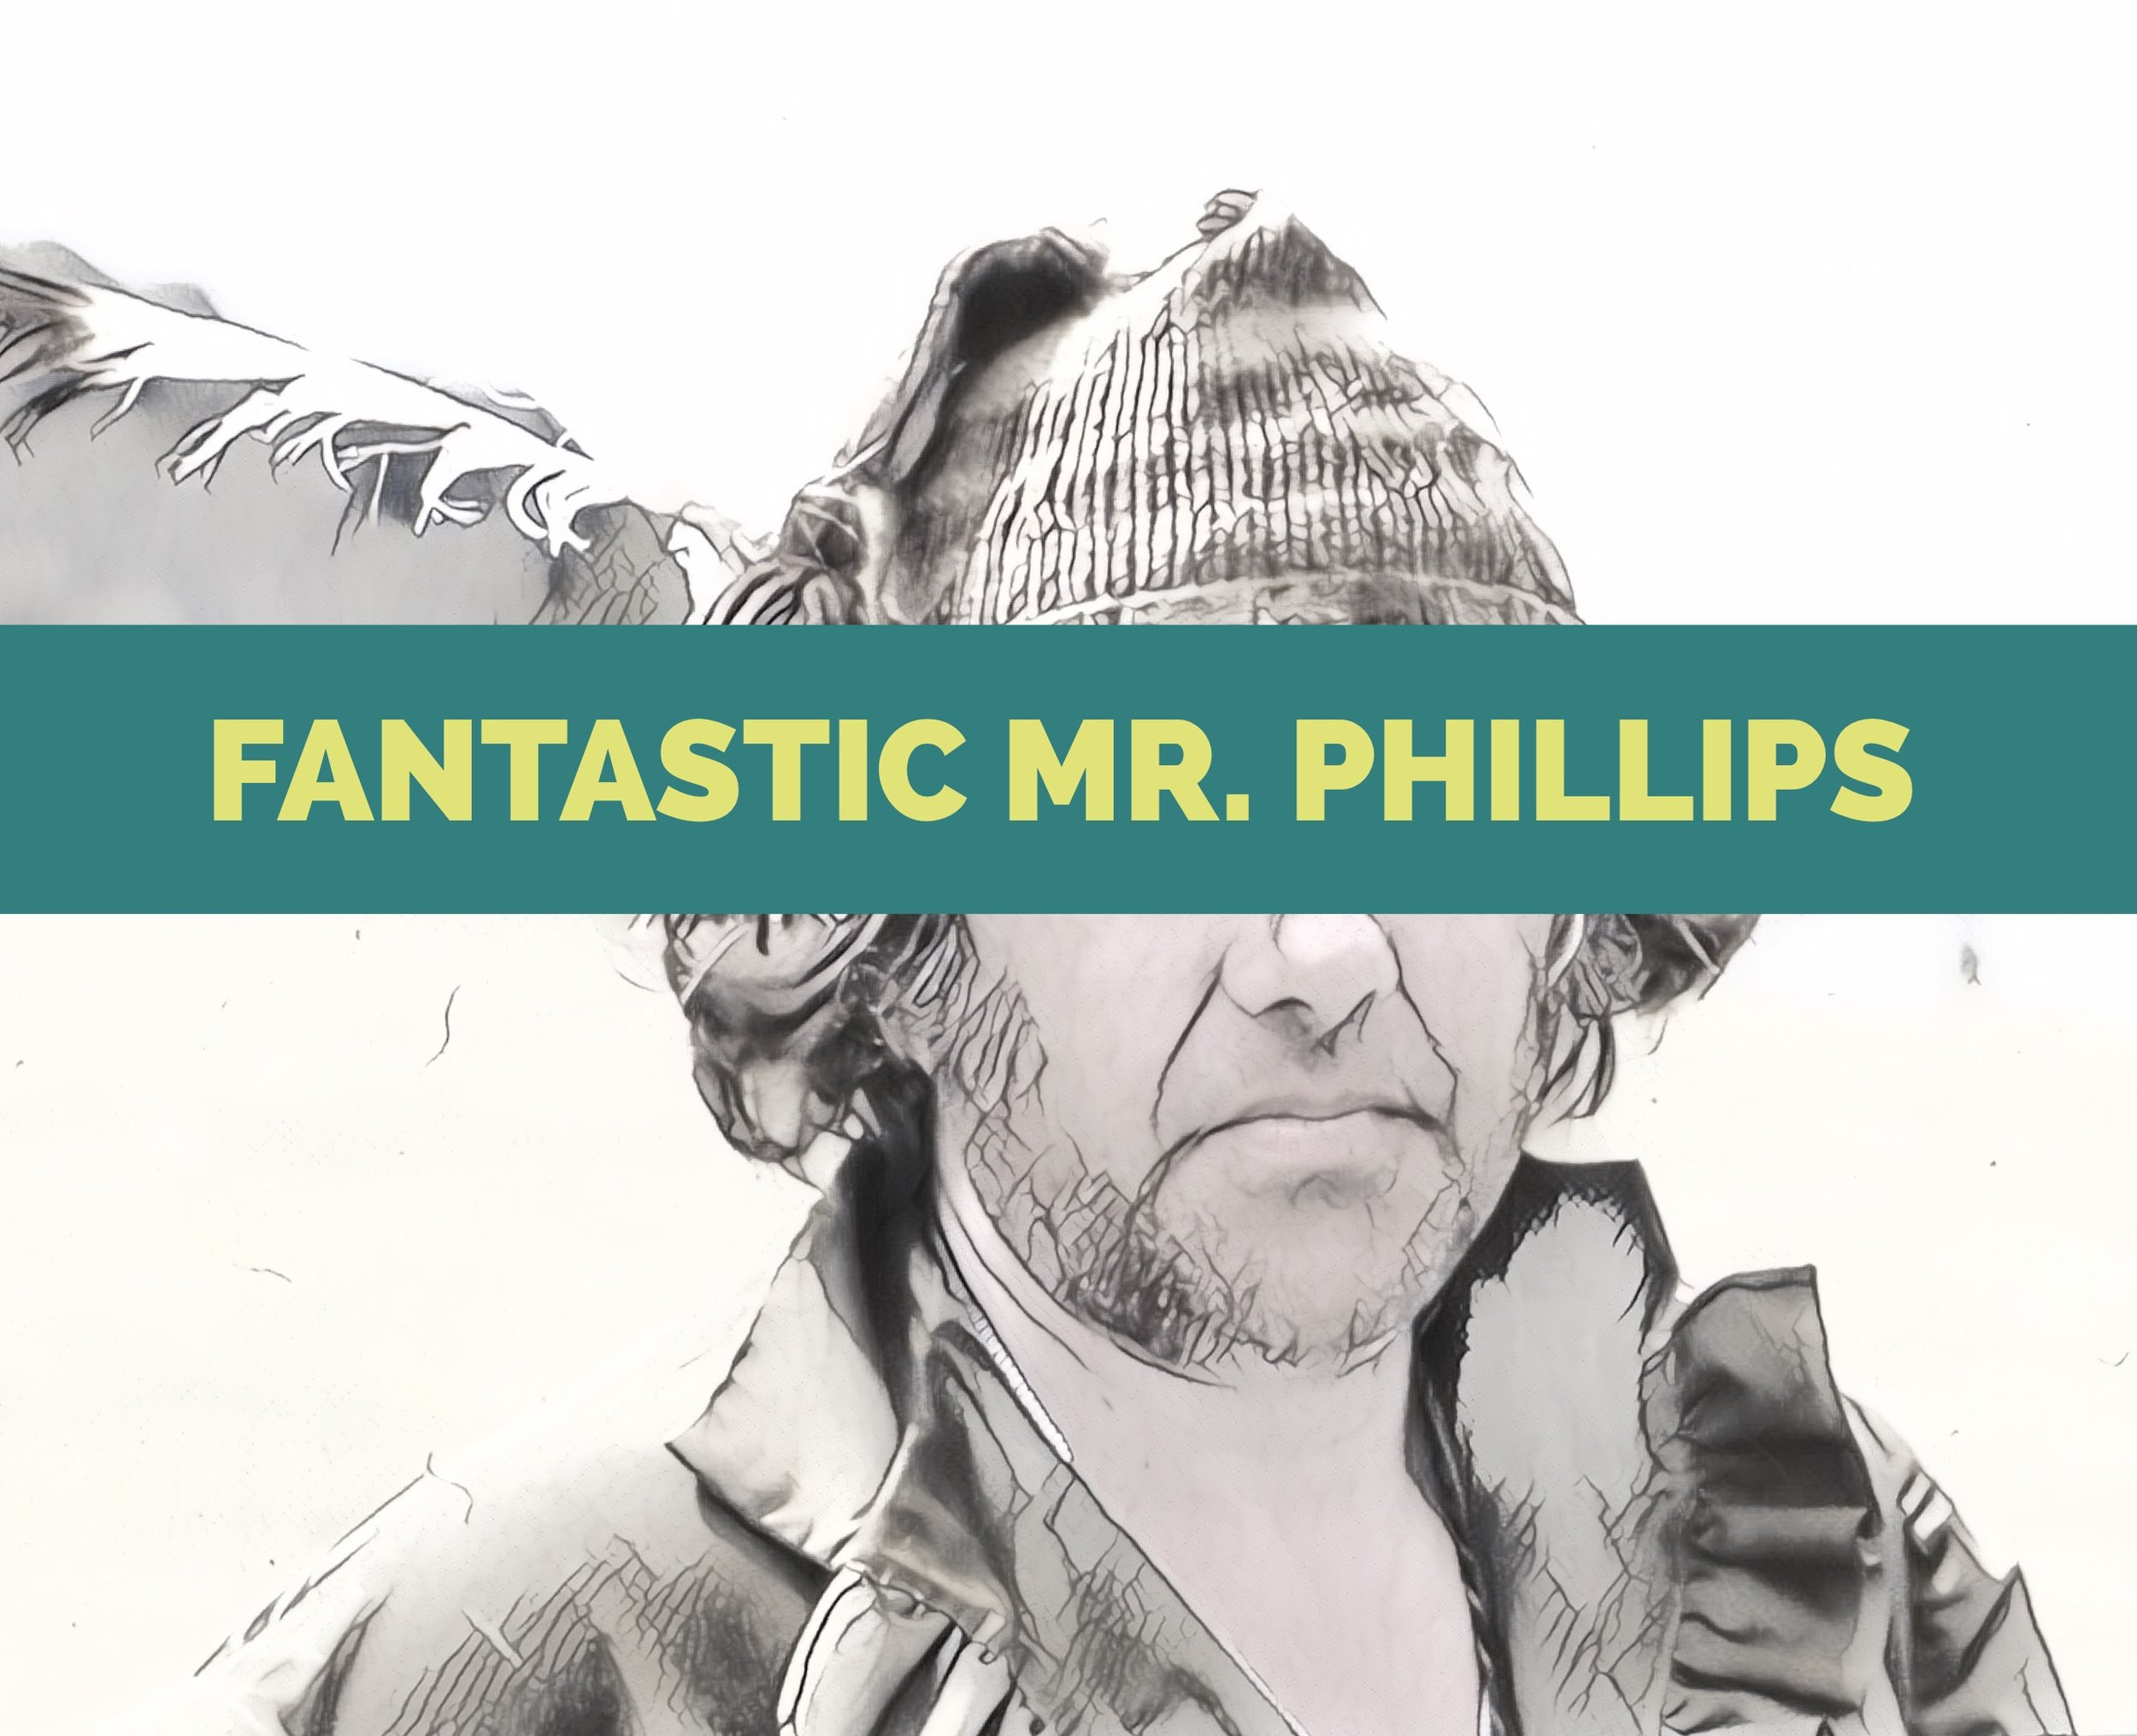 FantasticMrPhillips.jpeg